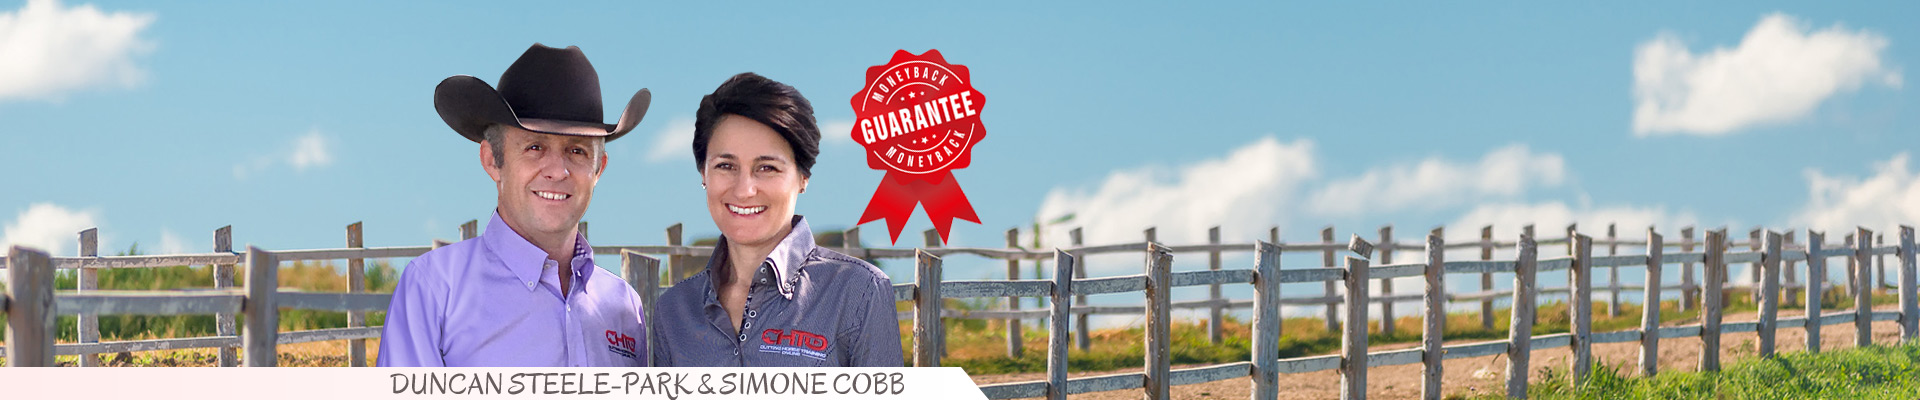 Duncan Steel-Park and Simone Cobb, founders of Cutting Horse Training Online, offer a money-back guarantee of their cutting horse video training